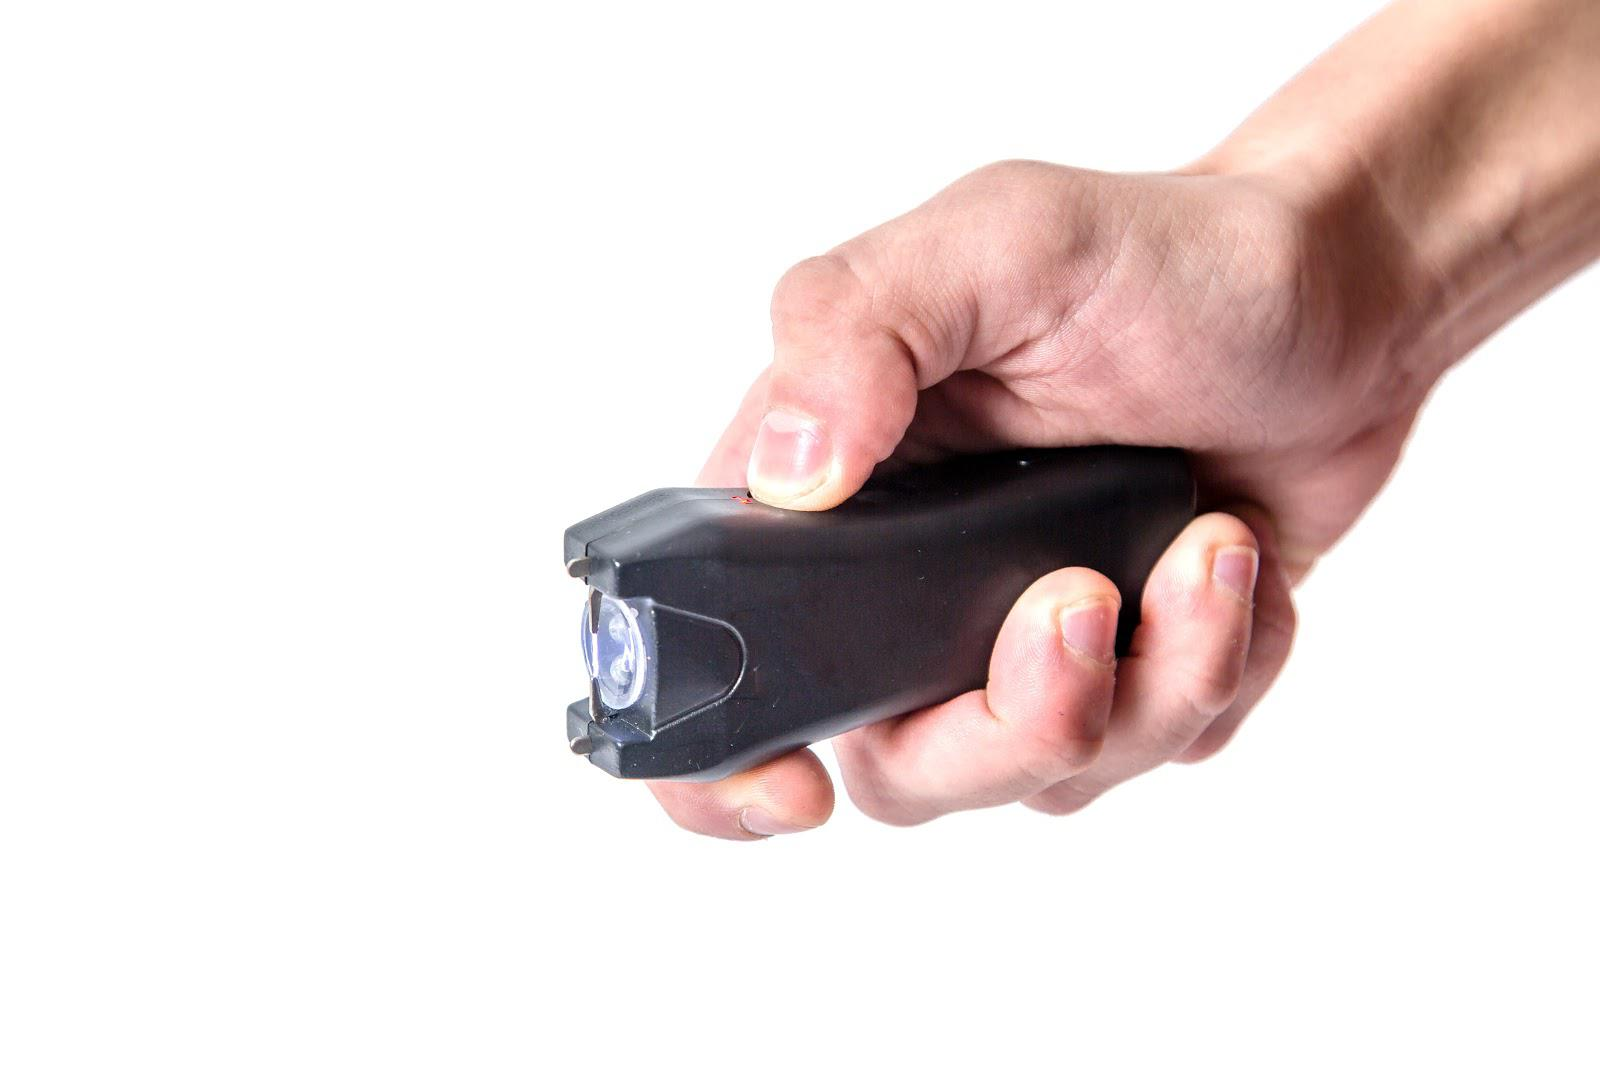 What-is-a-taser-torch-and-what-is-the-penalty-for-bringing-one-into-the-UK